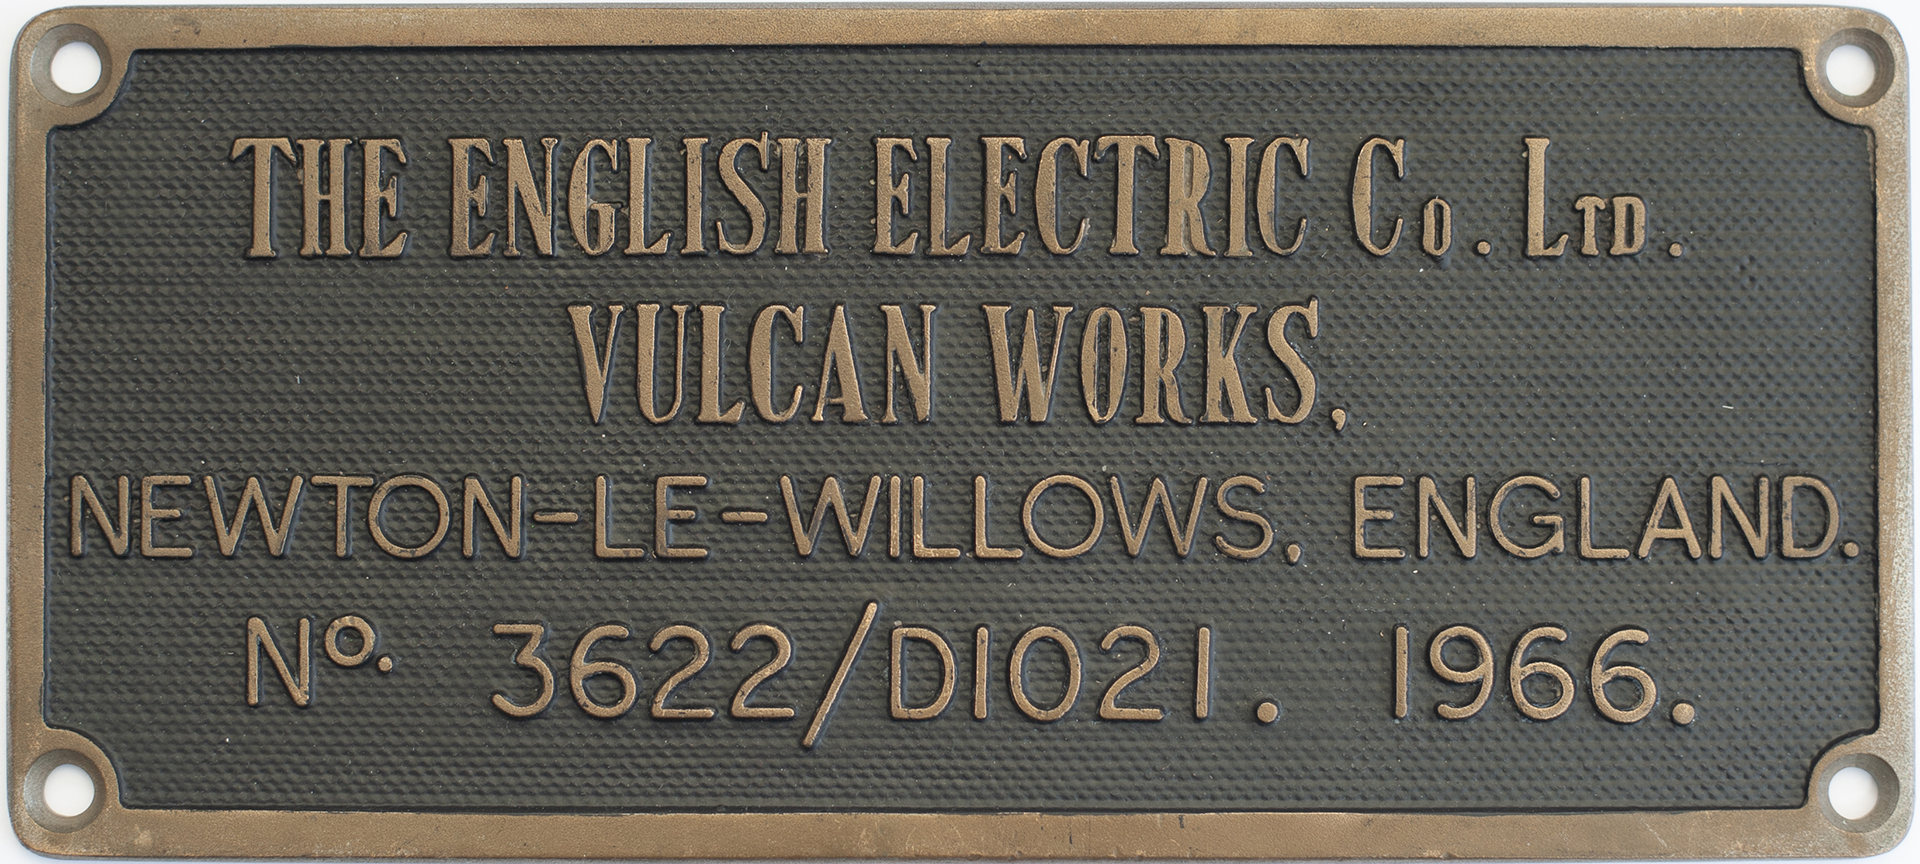 Worksplate THE ENGLISH ELECTRIC CO LTD VULCAN WORKS NEWTON-LE-WILLOWS ENGLAND No3622/D1021 1966 ex